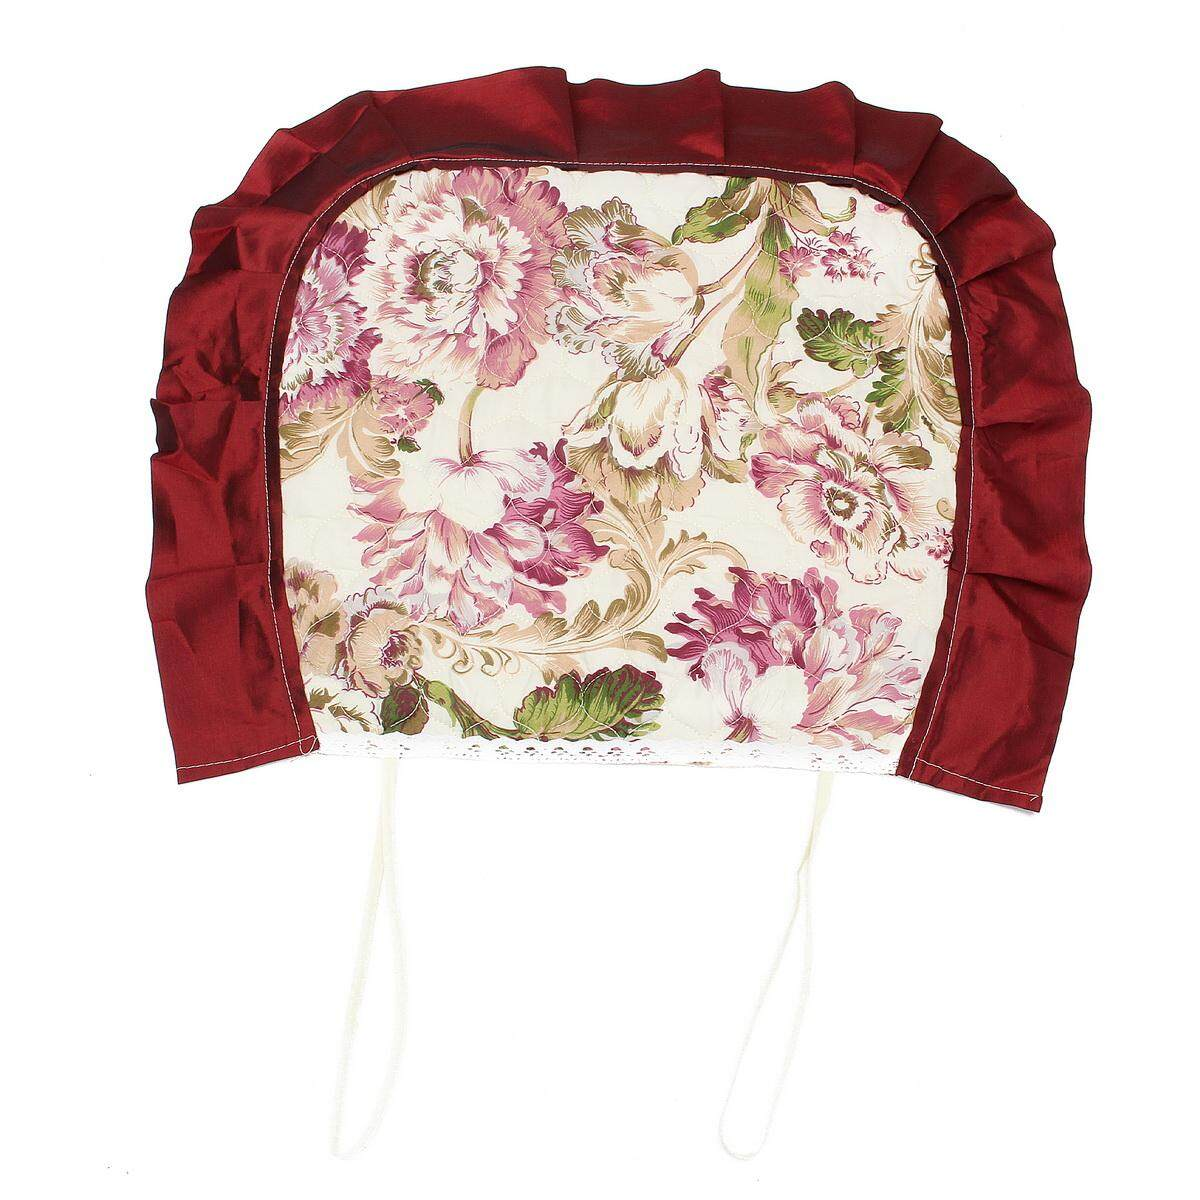 Vintage Floral Tablecloths Chair Cover Polyester Banquet Lace Coffee Table Cloth